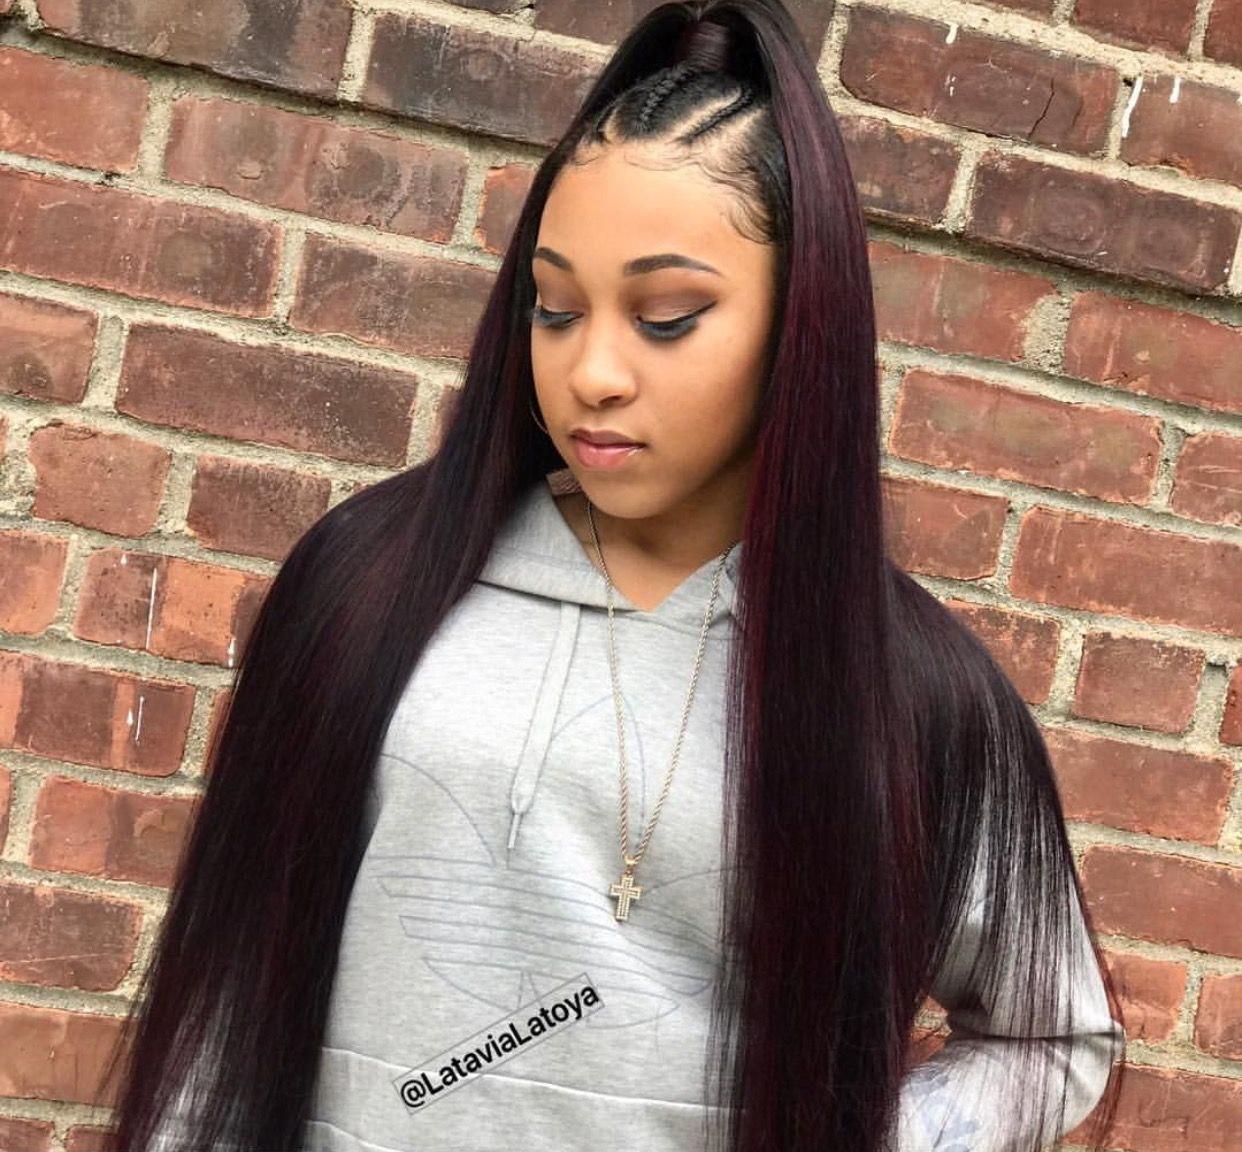 40+ American girl hairstyles for straight hair ideas in 2021